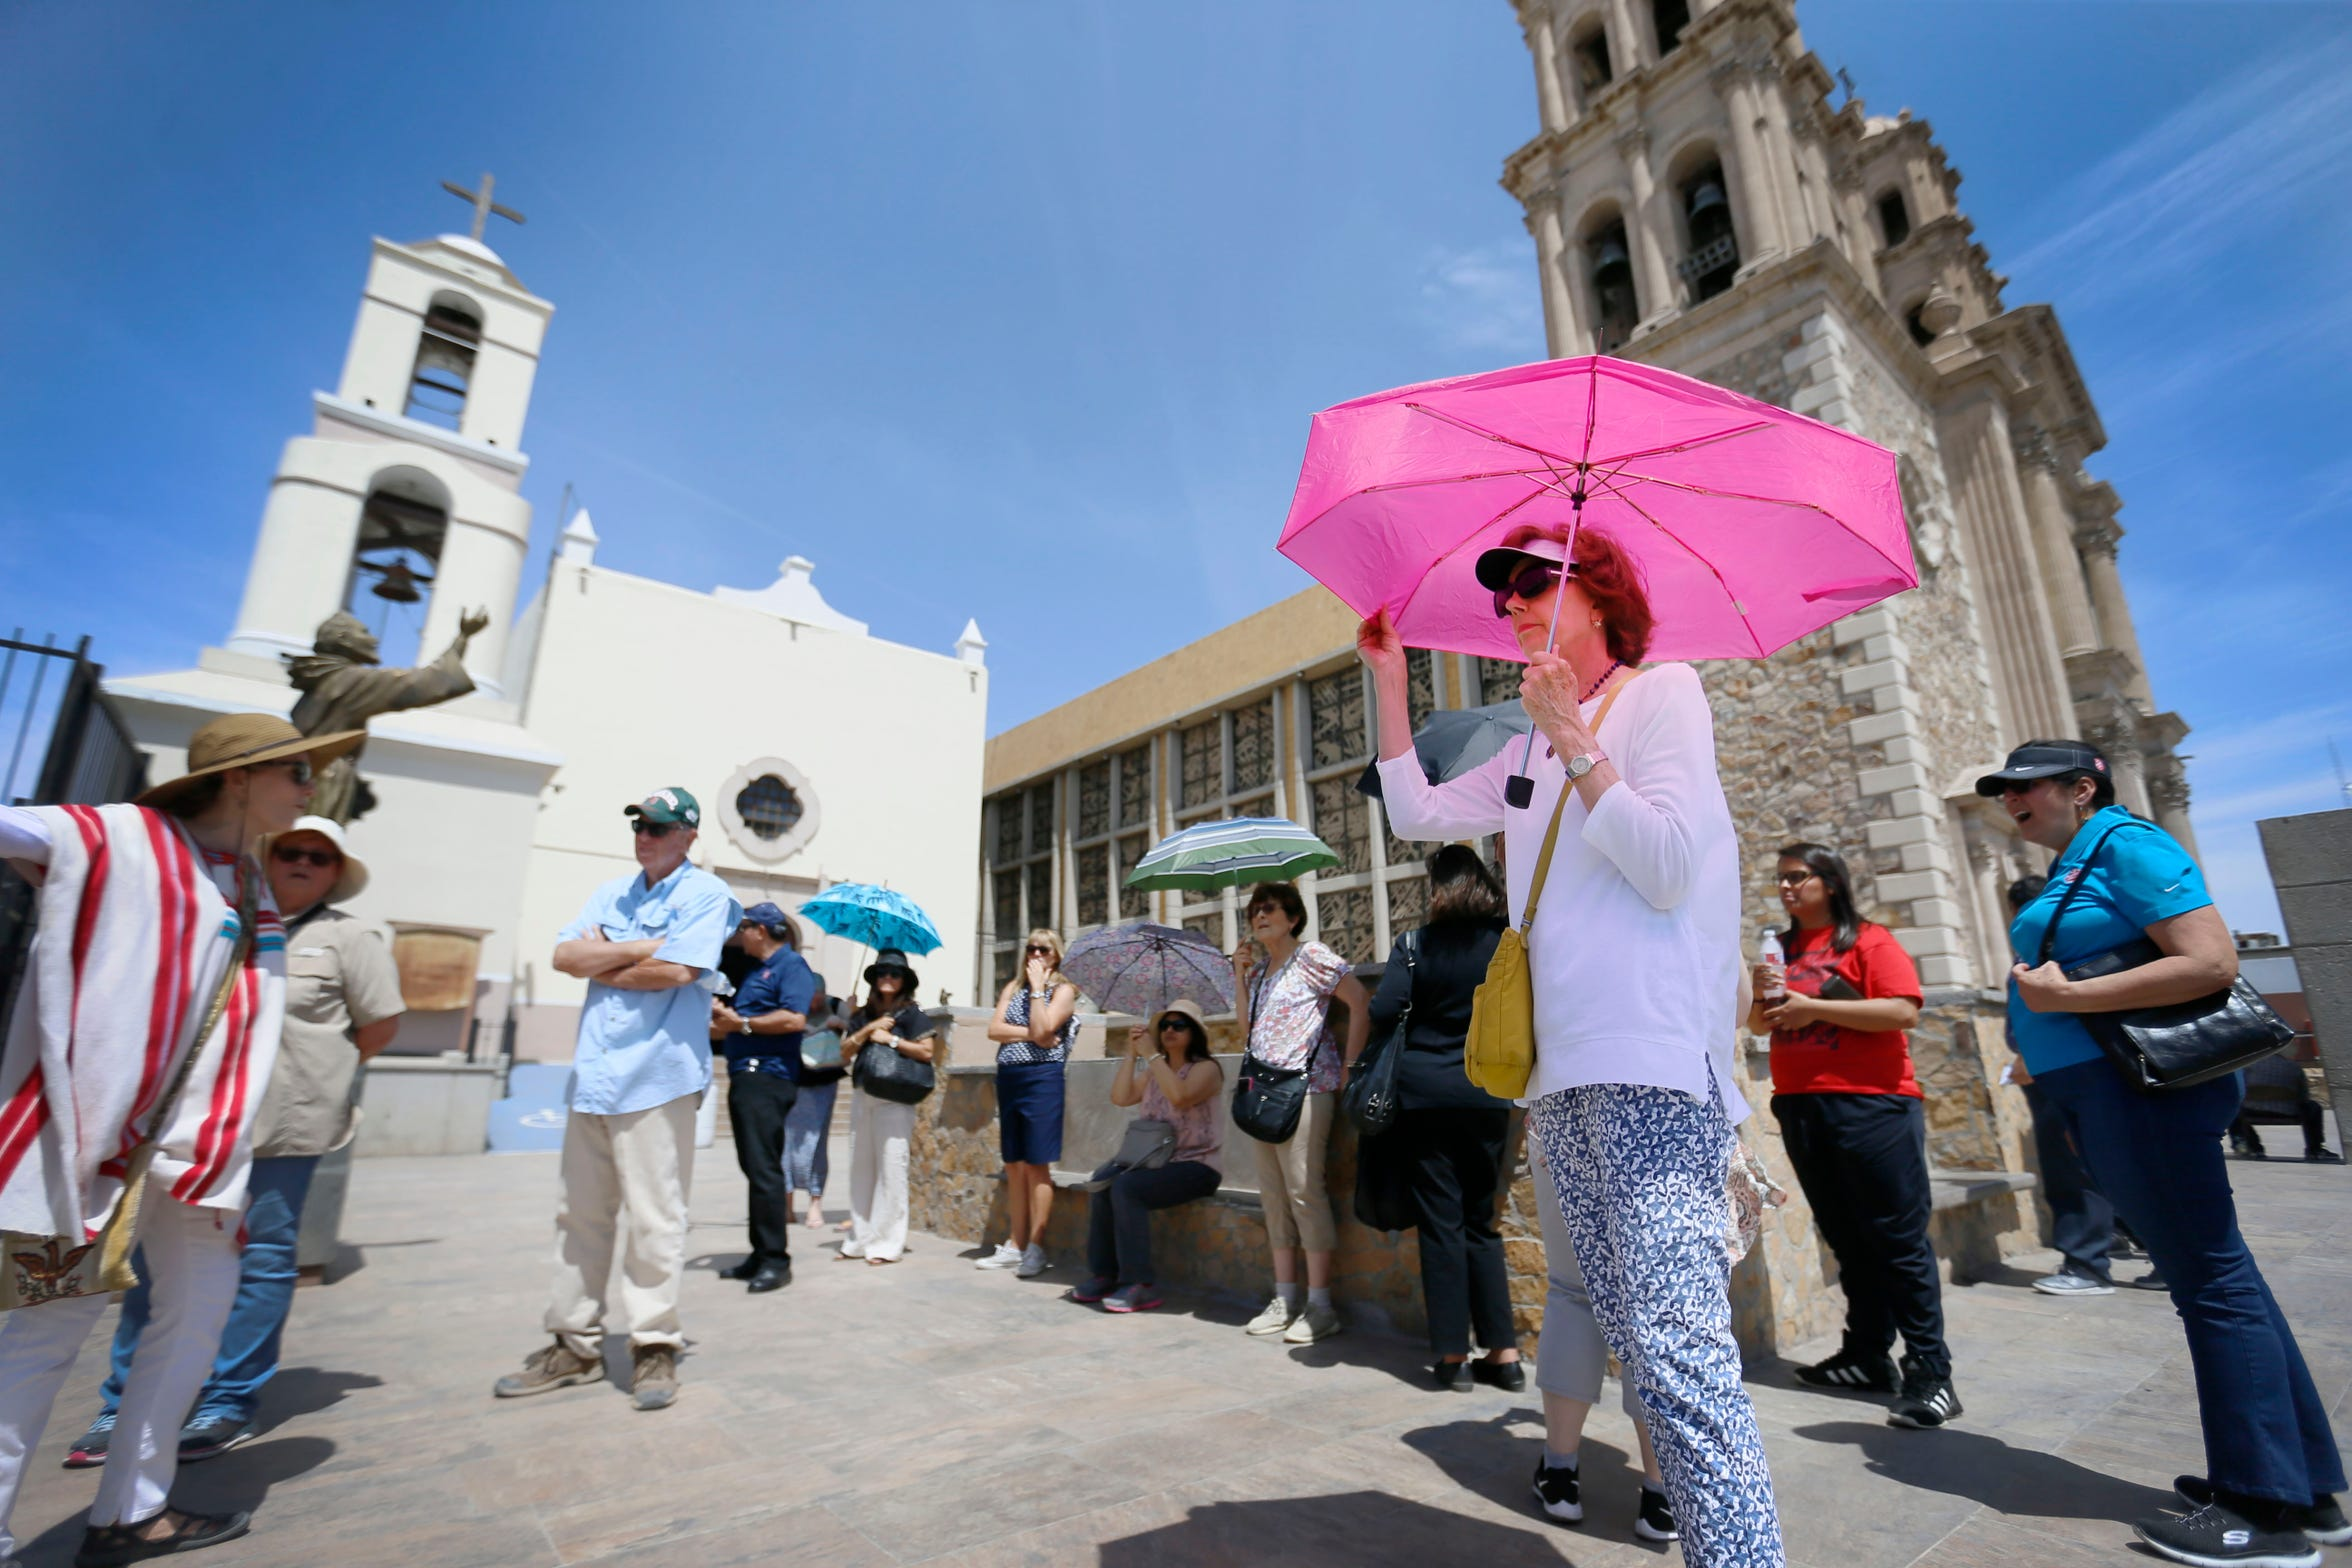 Melissa O'Rourke, presidential candidate Beto O'Rourke's mother, attends the Juárez historic walking tour lead by El Paso's first lady Adair Margo Thursday, May 16, in Juárez. The group toured the Cathedral of Ciudad Juarez and the Catedral de Nuestra Se–ora de Guadalupe.